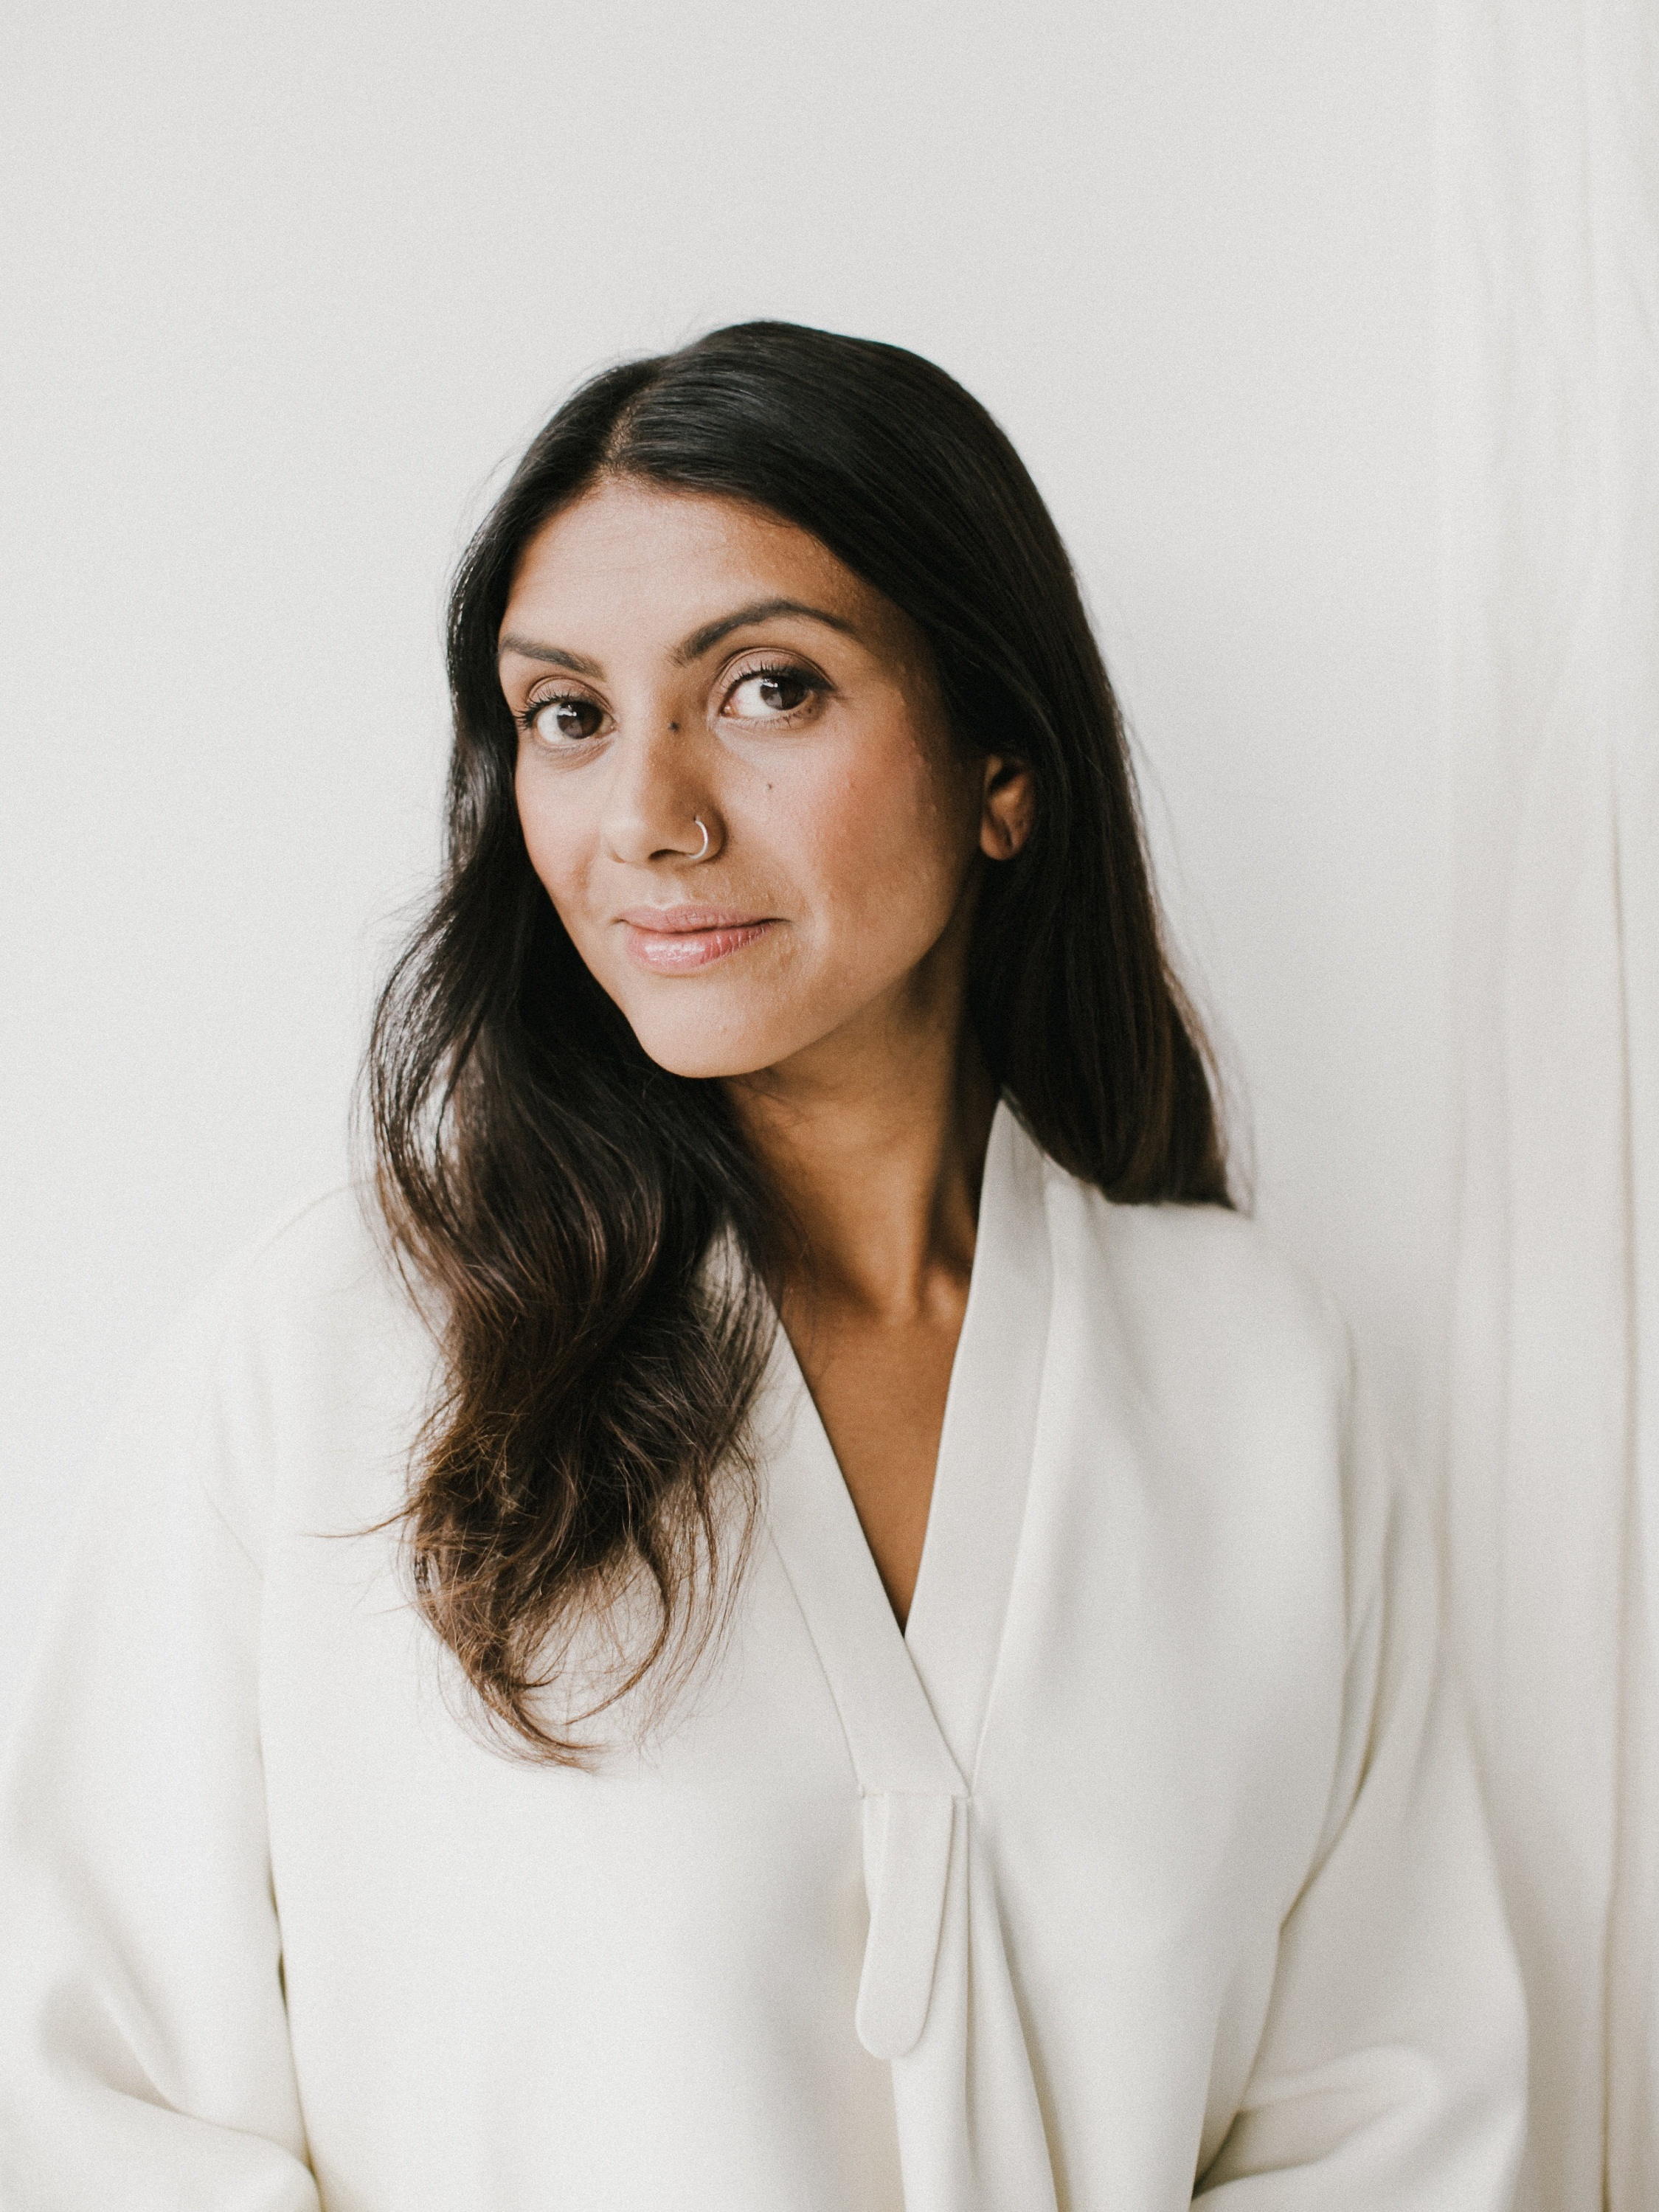 SONIA CHHINJI - Co-Founder + CEO, , WoodlotSonia Chhinji is the creative spark behind Woodlot, a Vancouver-based health, beauty, and wellness company. Sonia and Woodlot are on a mission to transform the industry to a point where quality is never in question. Ignited by a lifelong passion for entrepreneurship and inspired by tradition, Sonia, along with her partner, Fouad Farraj, co-founded Woodlot in 2014 from their kitchen in Vancouver, producing their signature clean-burning, GMO-free soy-based coconut candles, and plant-based soaps. As word-of-mouth spread like wildfire, they rapidly outgrew their home headquarters and expanded Woodlot's stockists to more than 400 worldwide